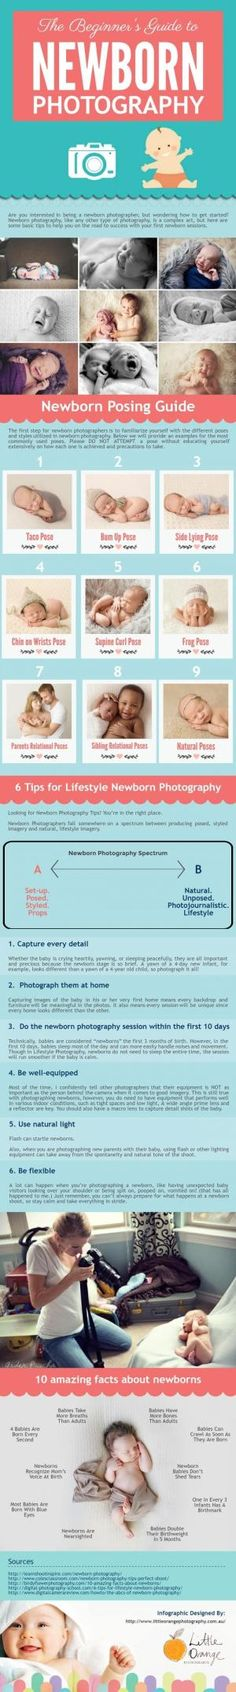 If you're new to photography, check out this infographic for newborn photography. If you're new to photography, check out this infographic for newborn photography ideas, the beginner's guide t Foto Newborn, Newborn Posing, Newborn Shoot, Lifestyle Newborn Photography, Children Photography, Photography Ideas, Infant Photography, Digital Photography, Photography Magazine